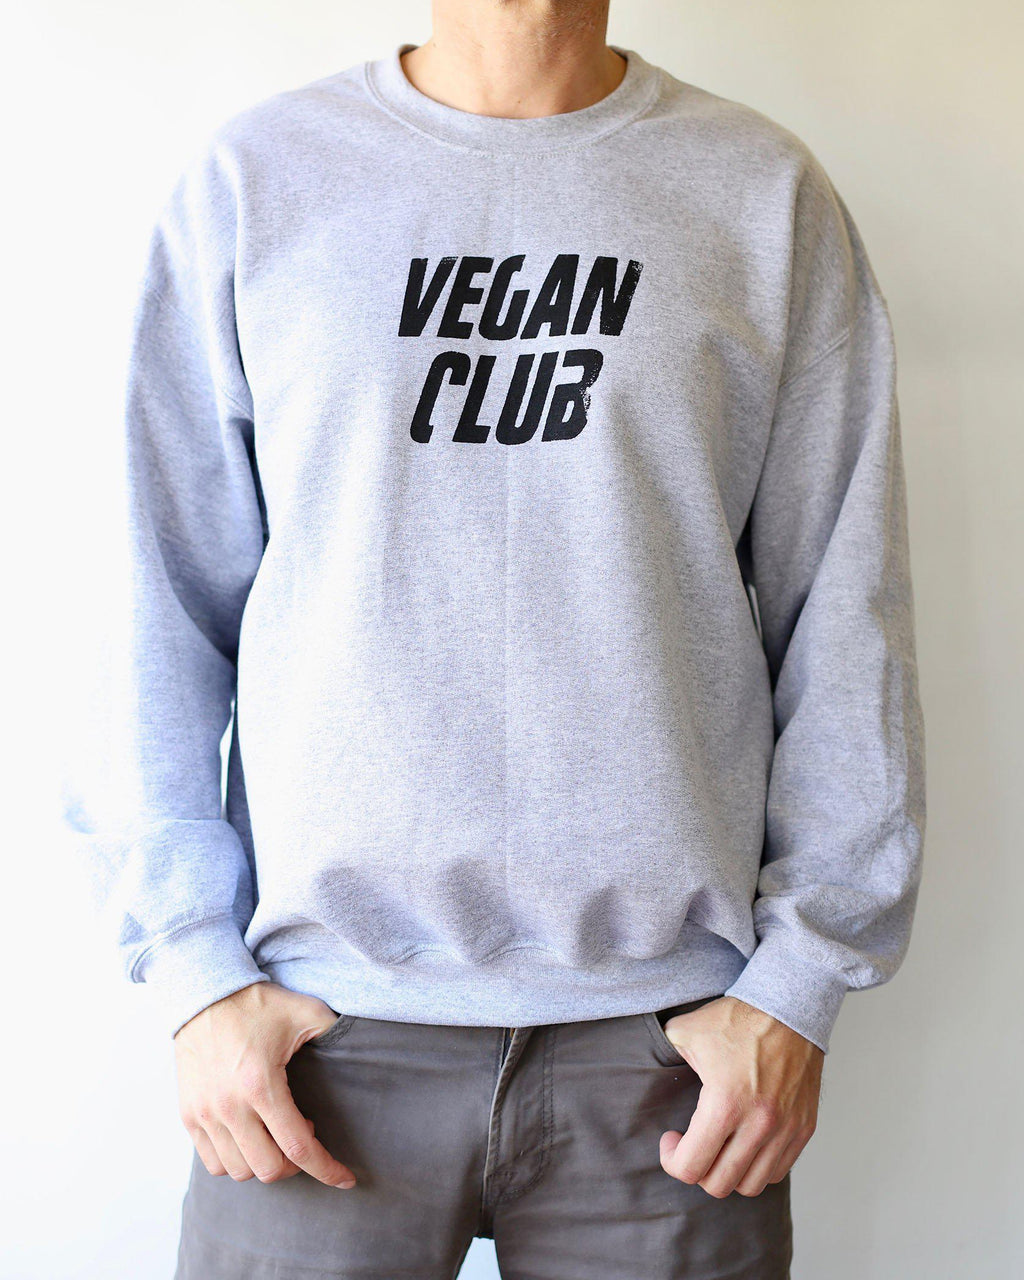 Vegan Club Unisex Sweatshirt - Heather Grey